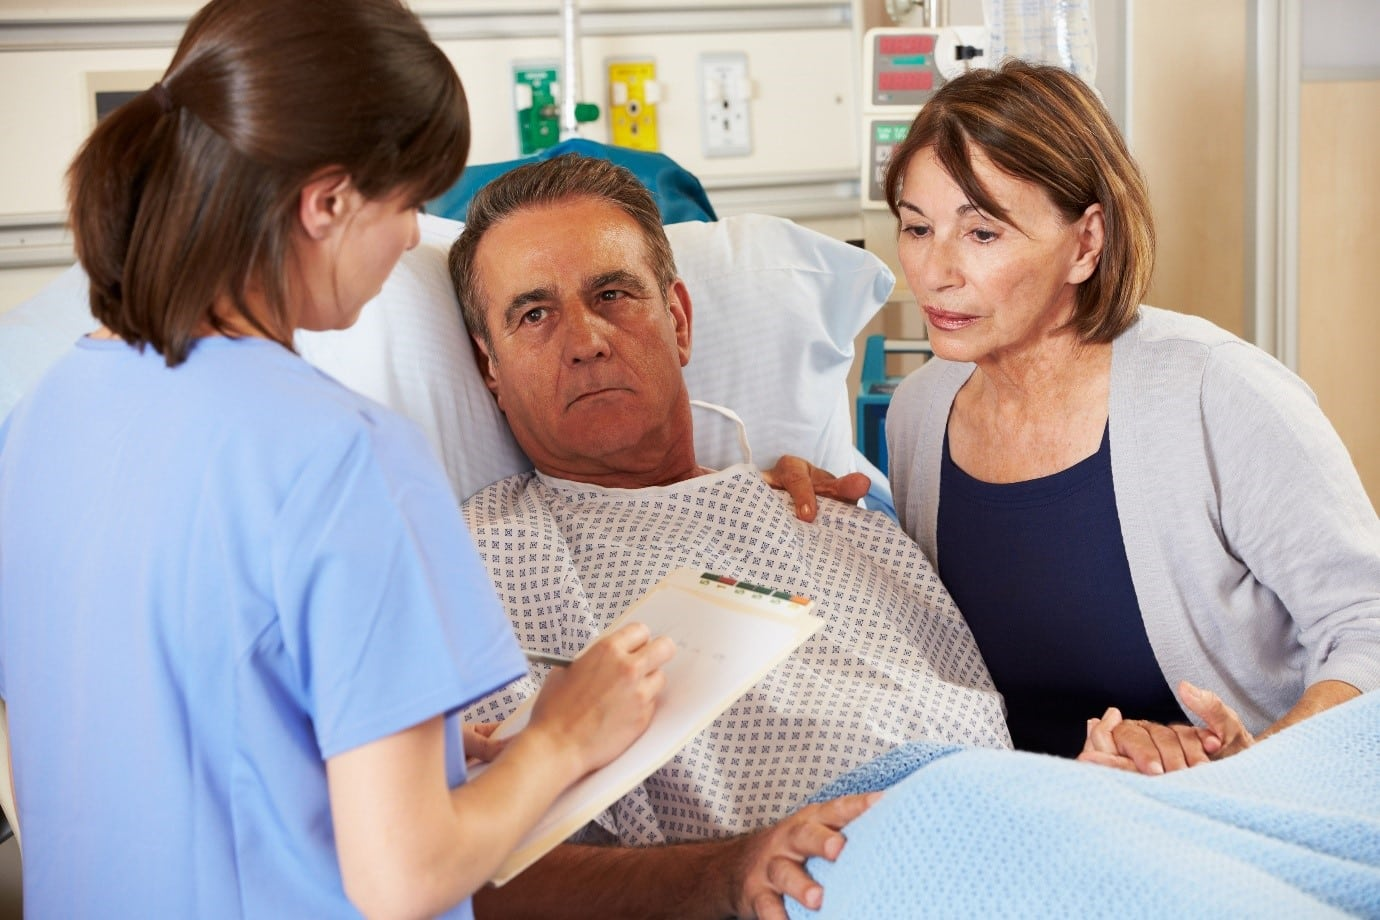 Health Professional Checks in on Patient